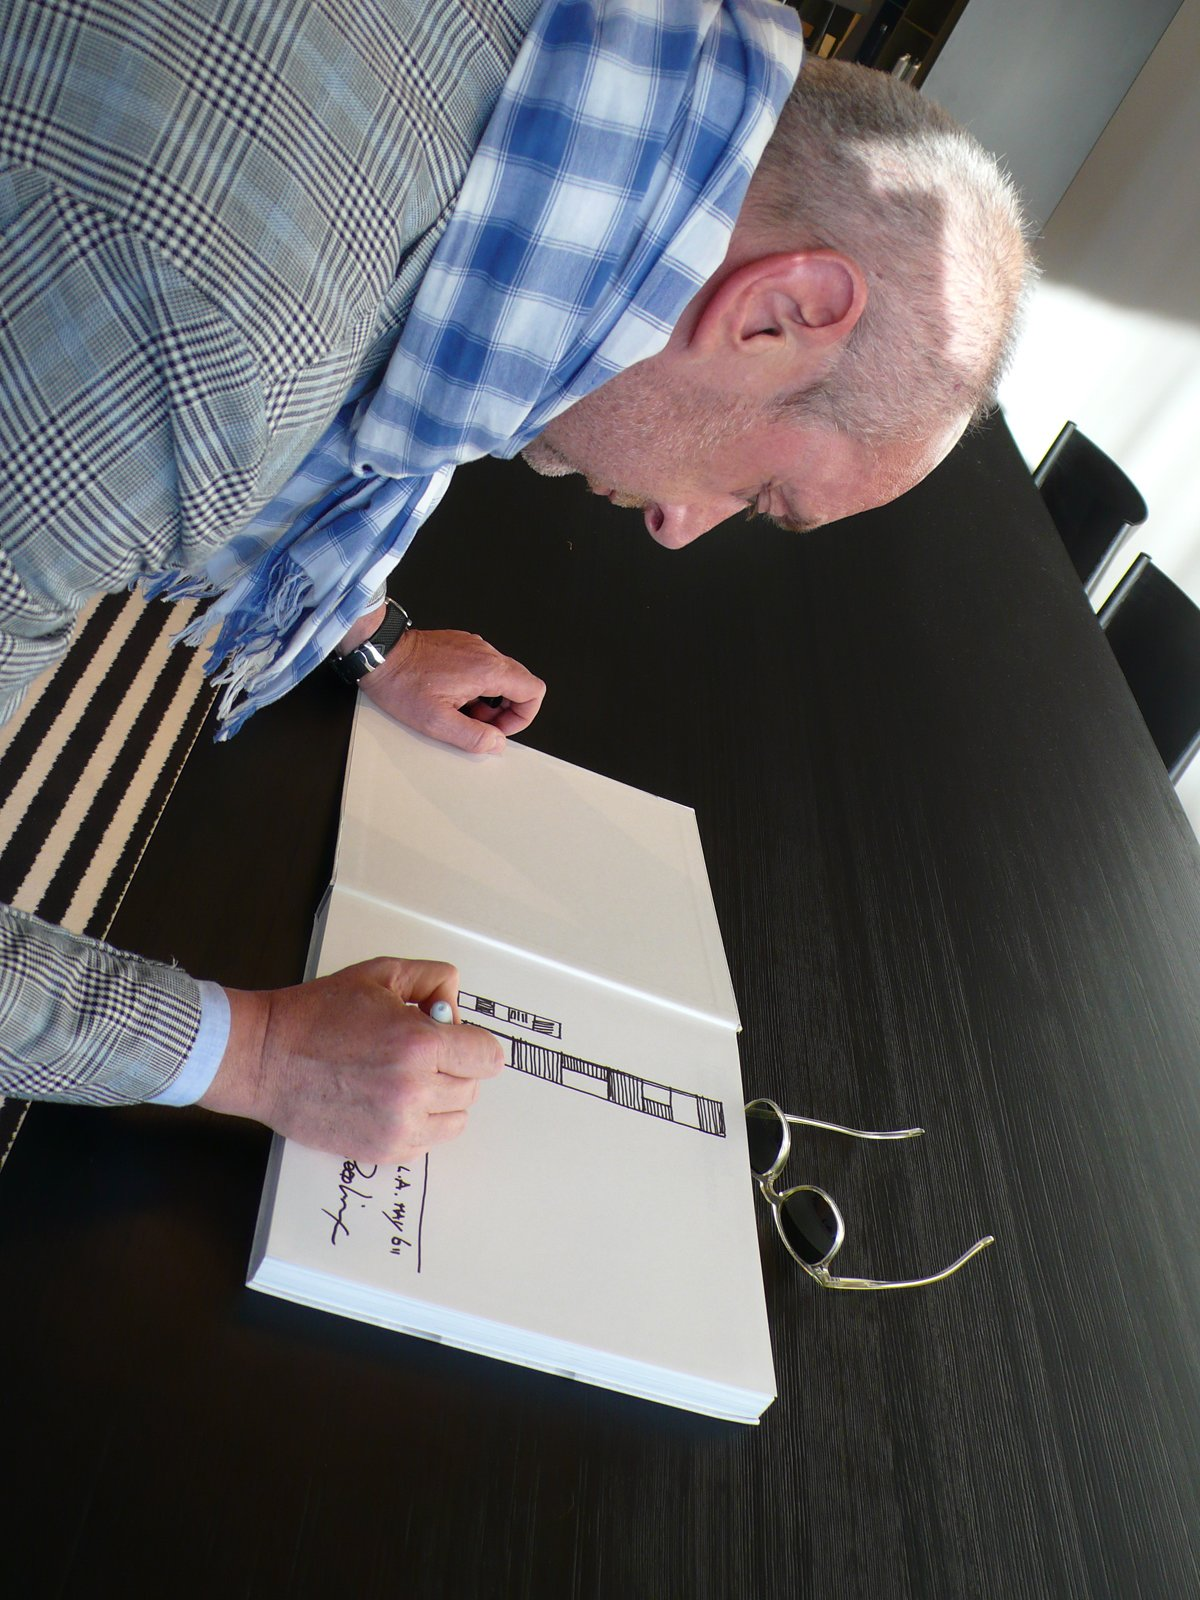 Lissoni created original drawings as a sort of signature in his new book, Piero Lissoni: Recent Architecture. (Here he sketches his new tower for a Benetton store in New York.)  Photo 6 of 7 in 10 Minutes With Piero Lissoni